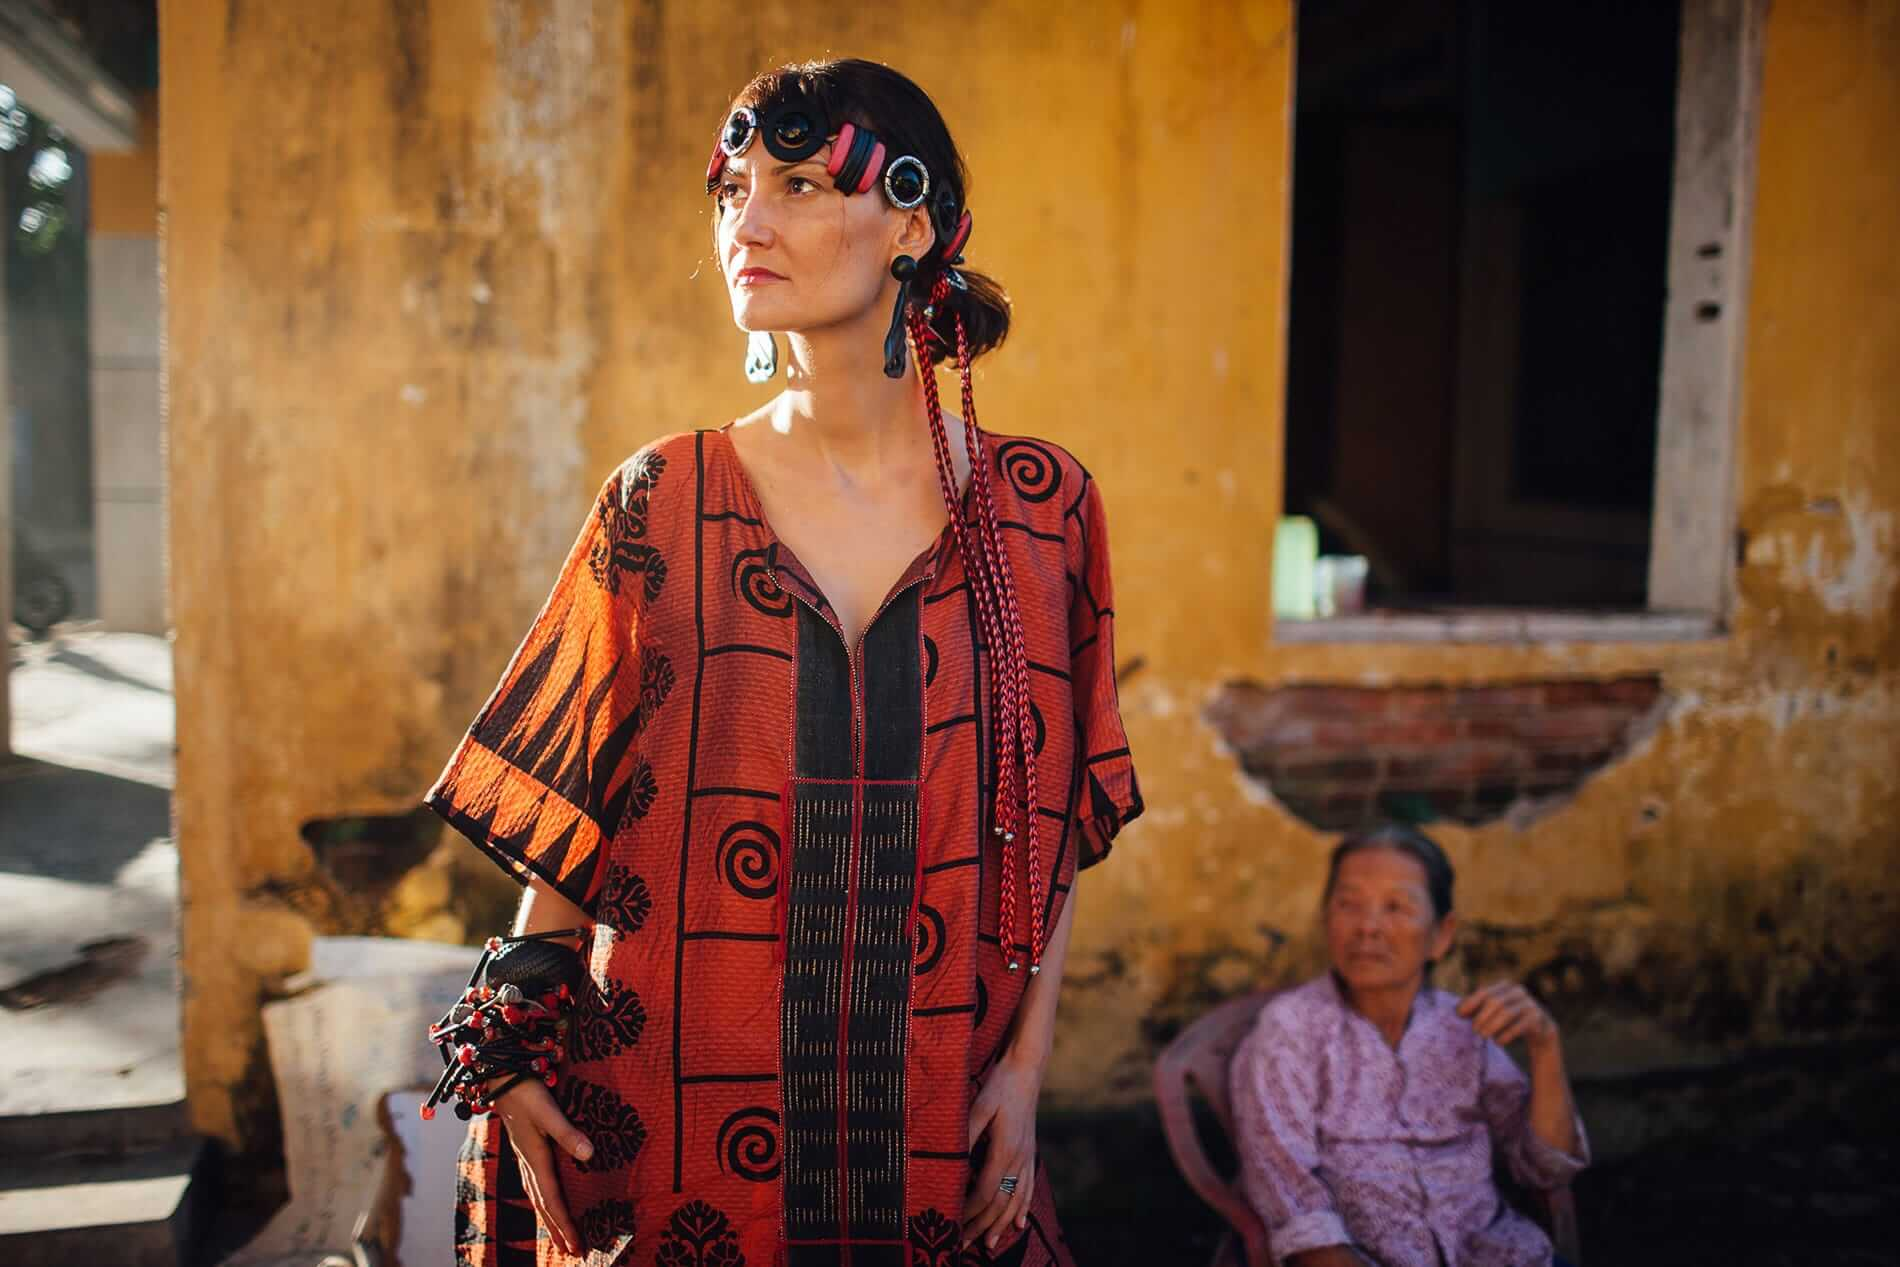 Avana Fashion in the streets of Hoi An